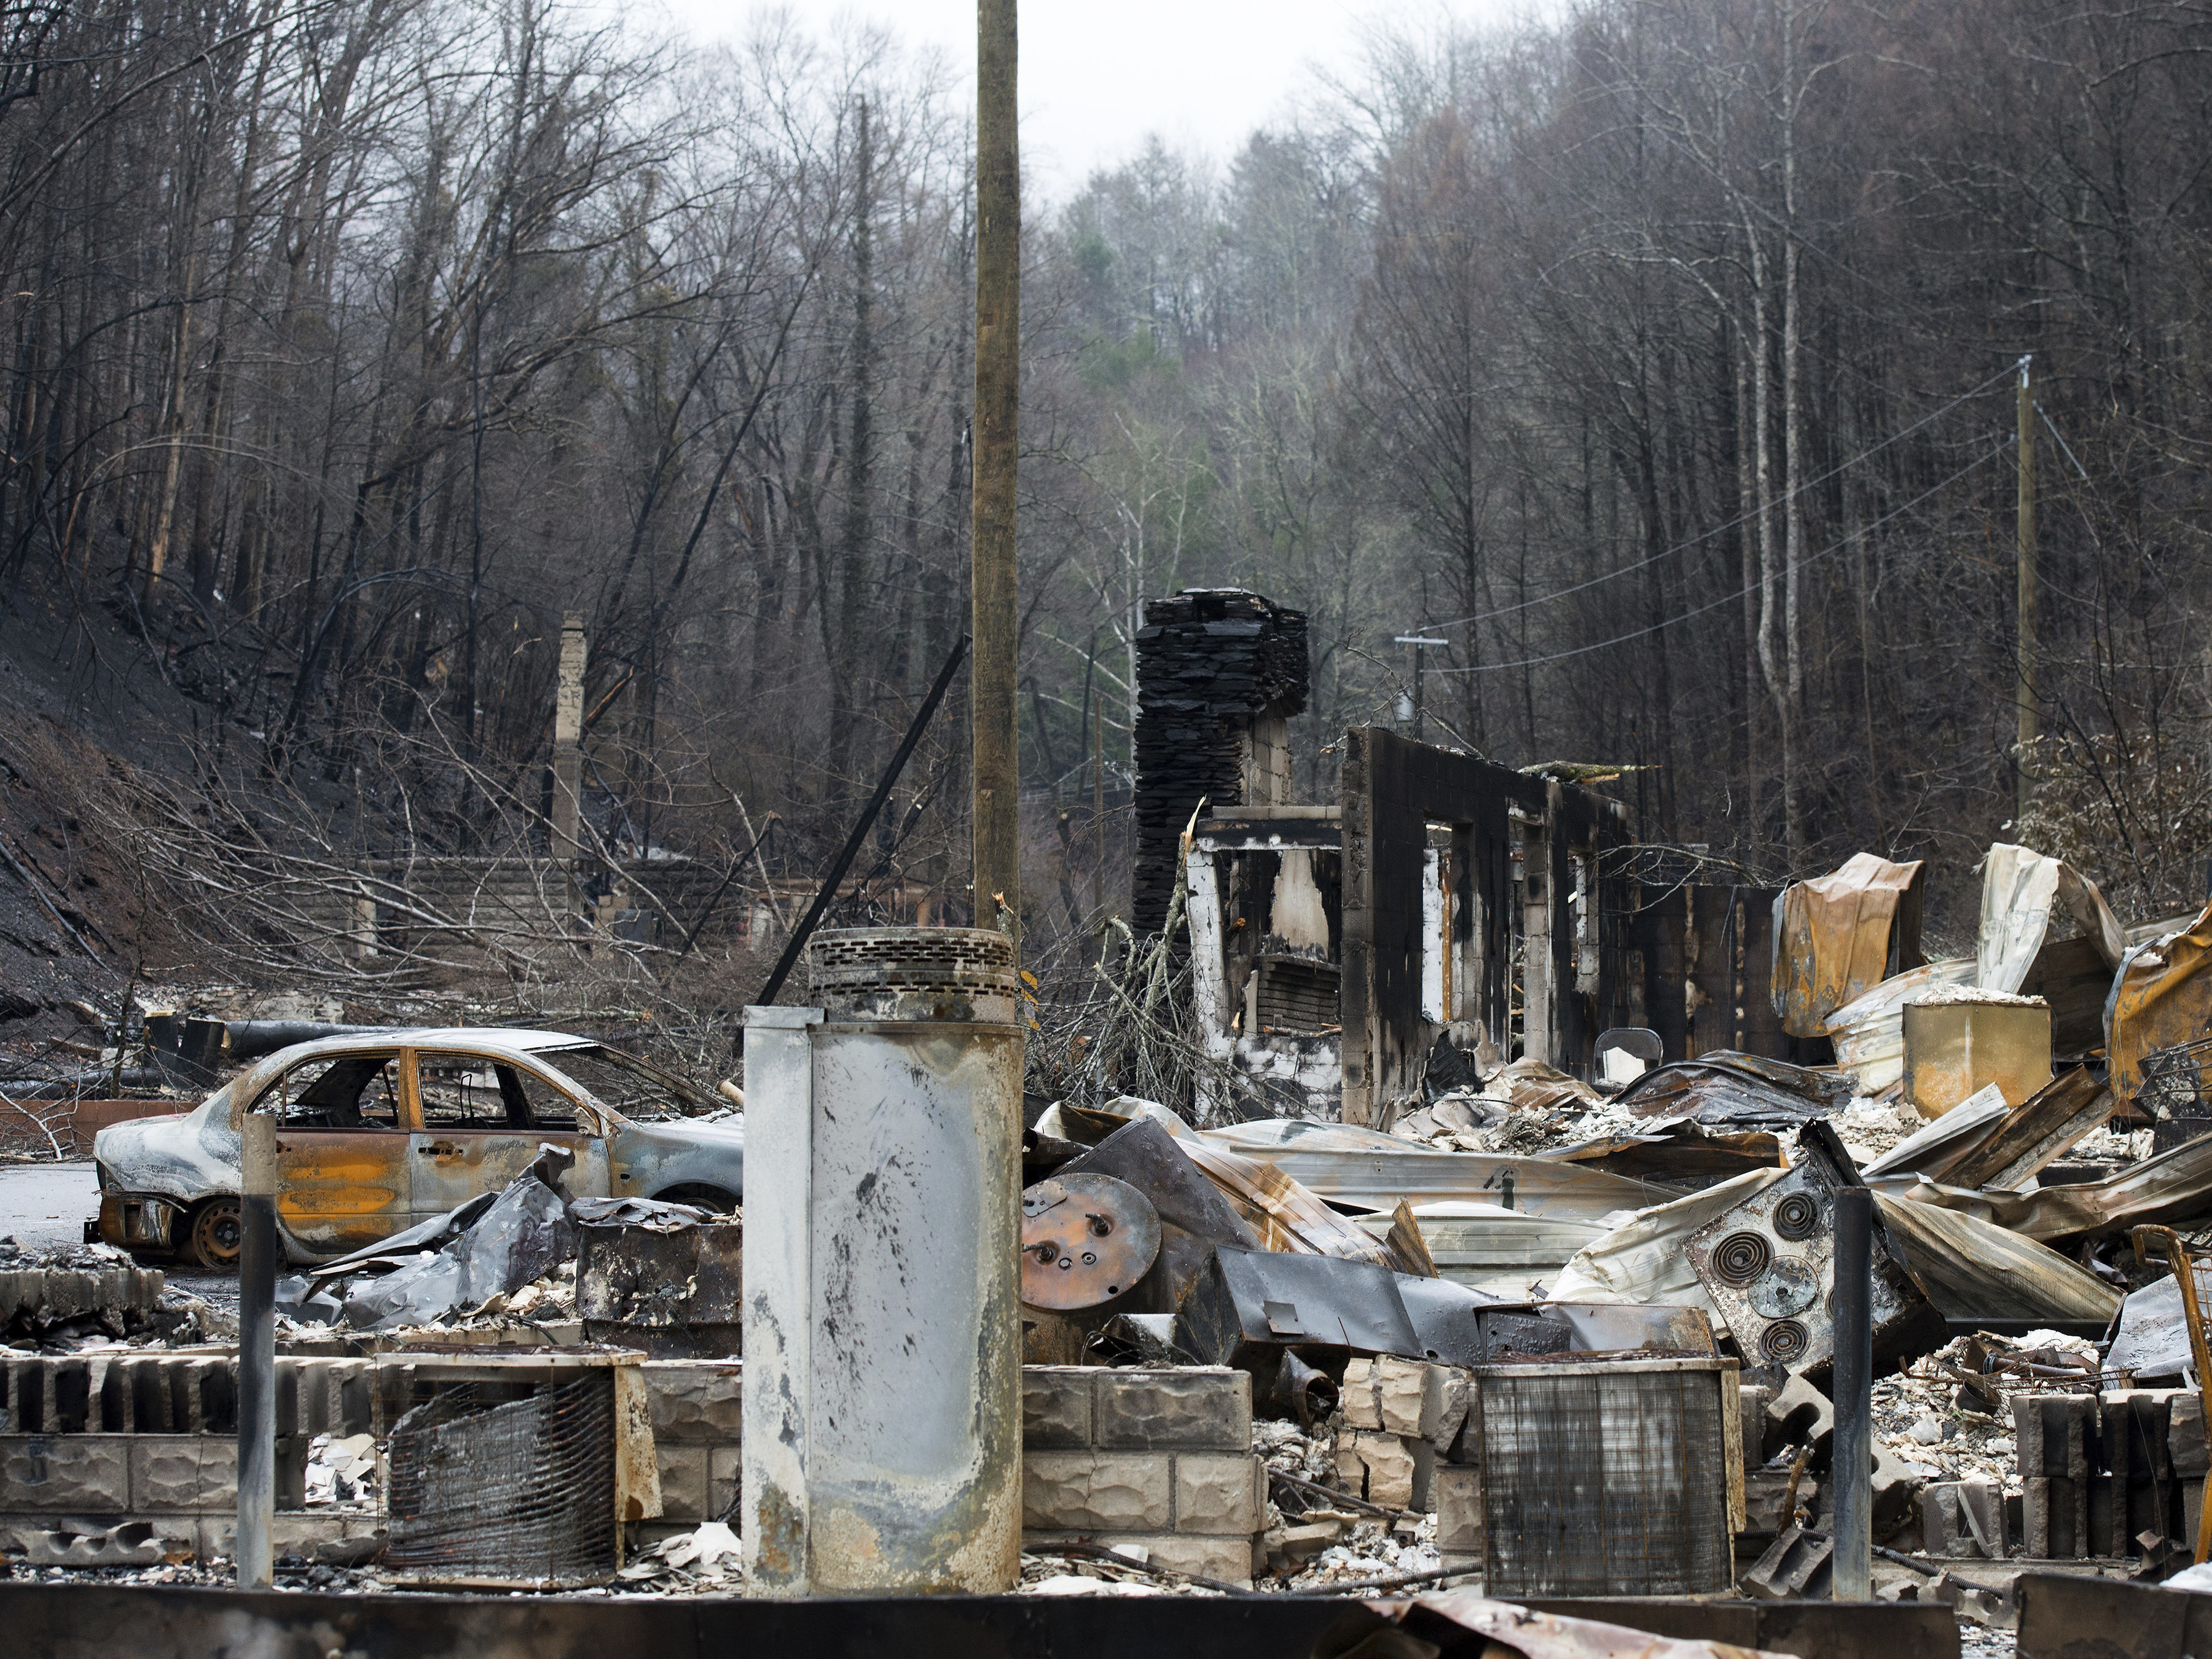 Two Juveniles Charged in Deadly Tennessee Wildfires